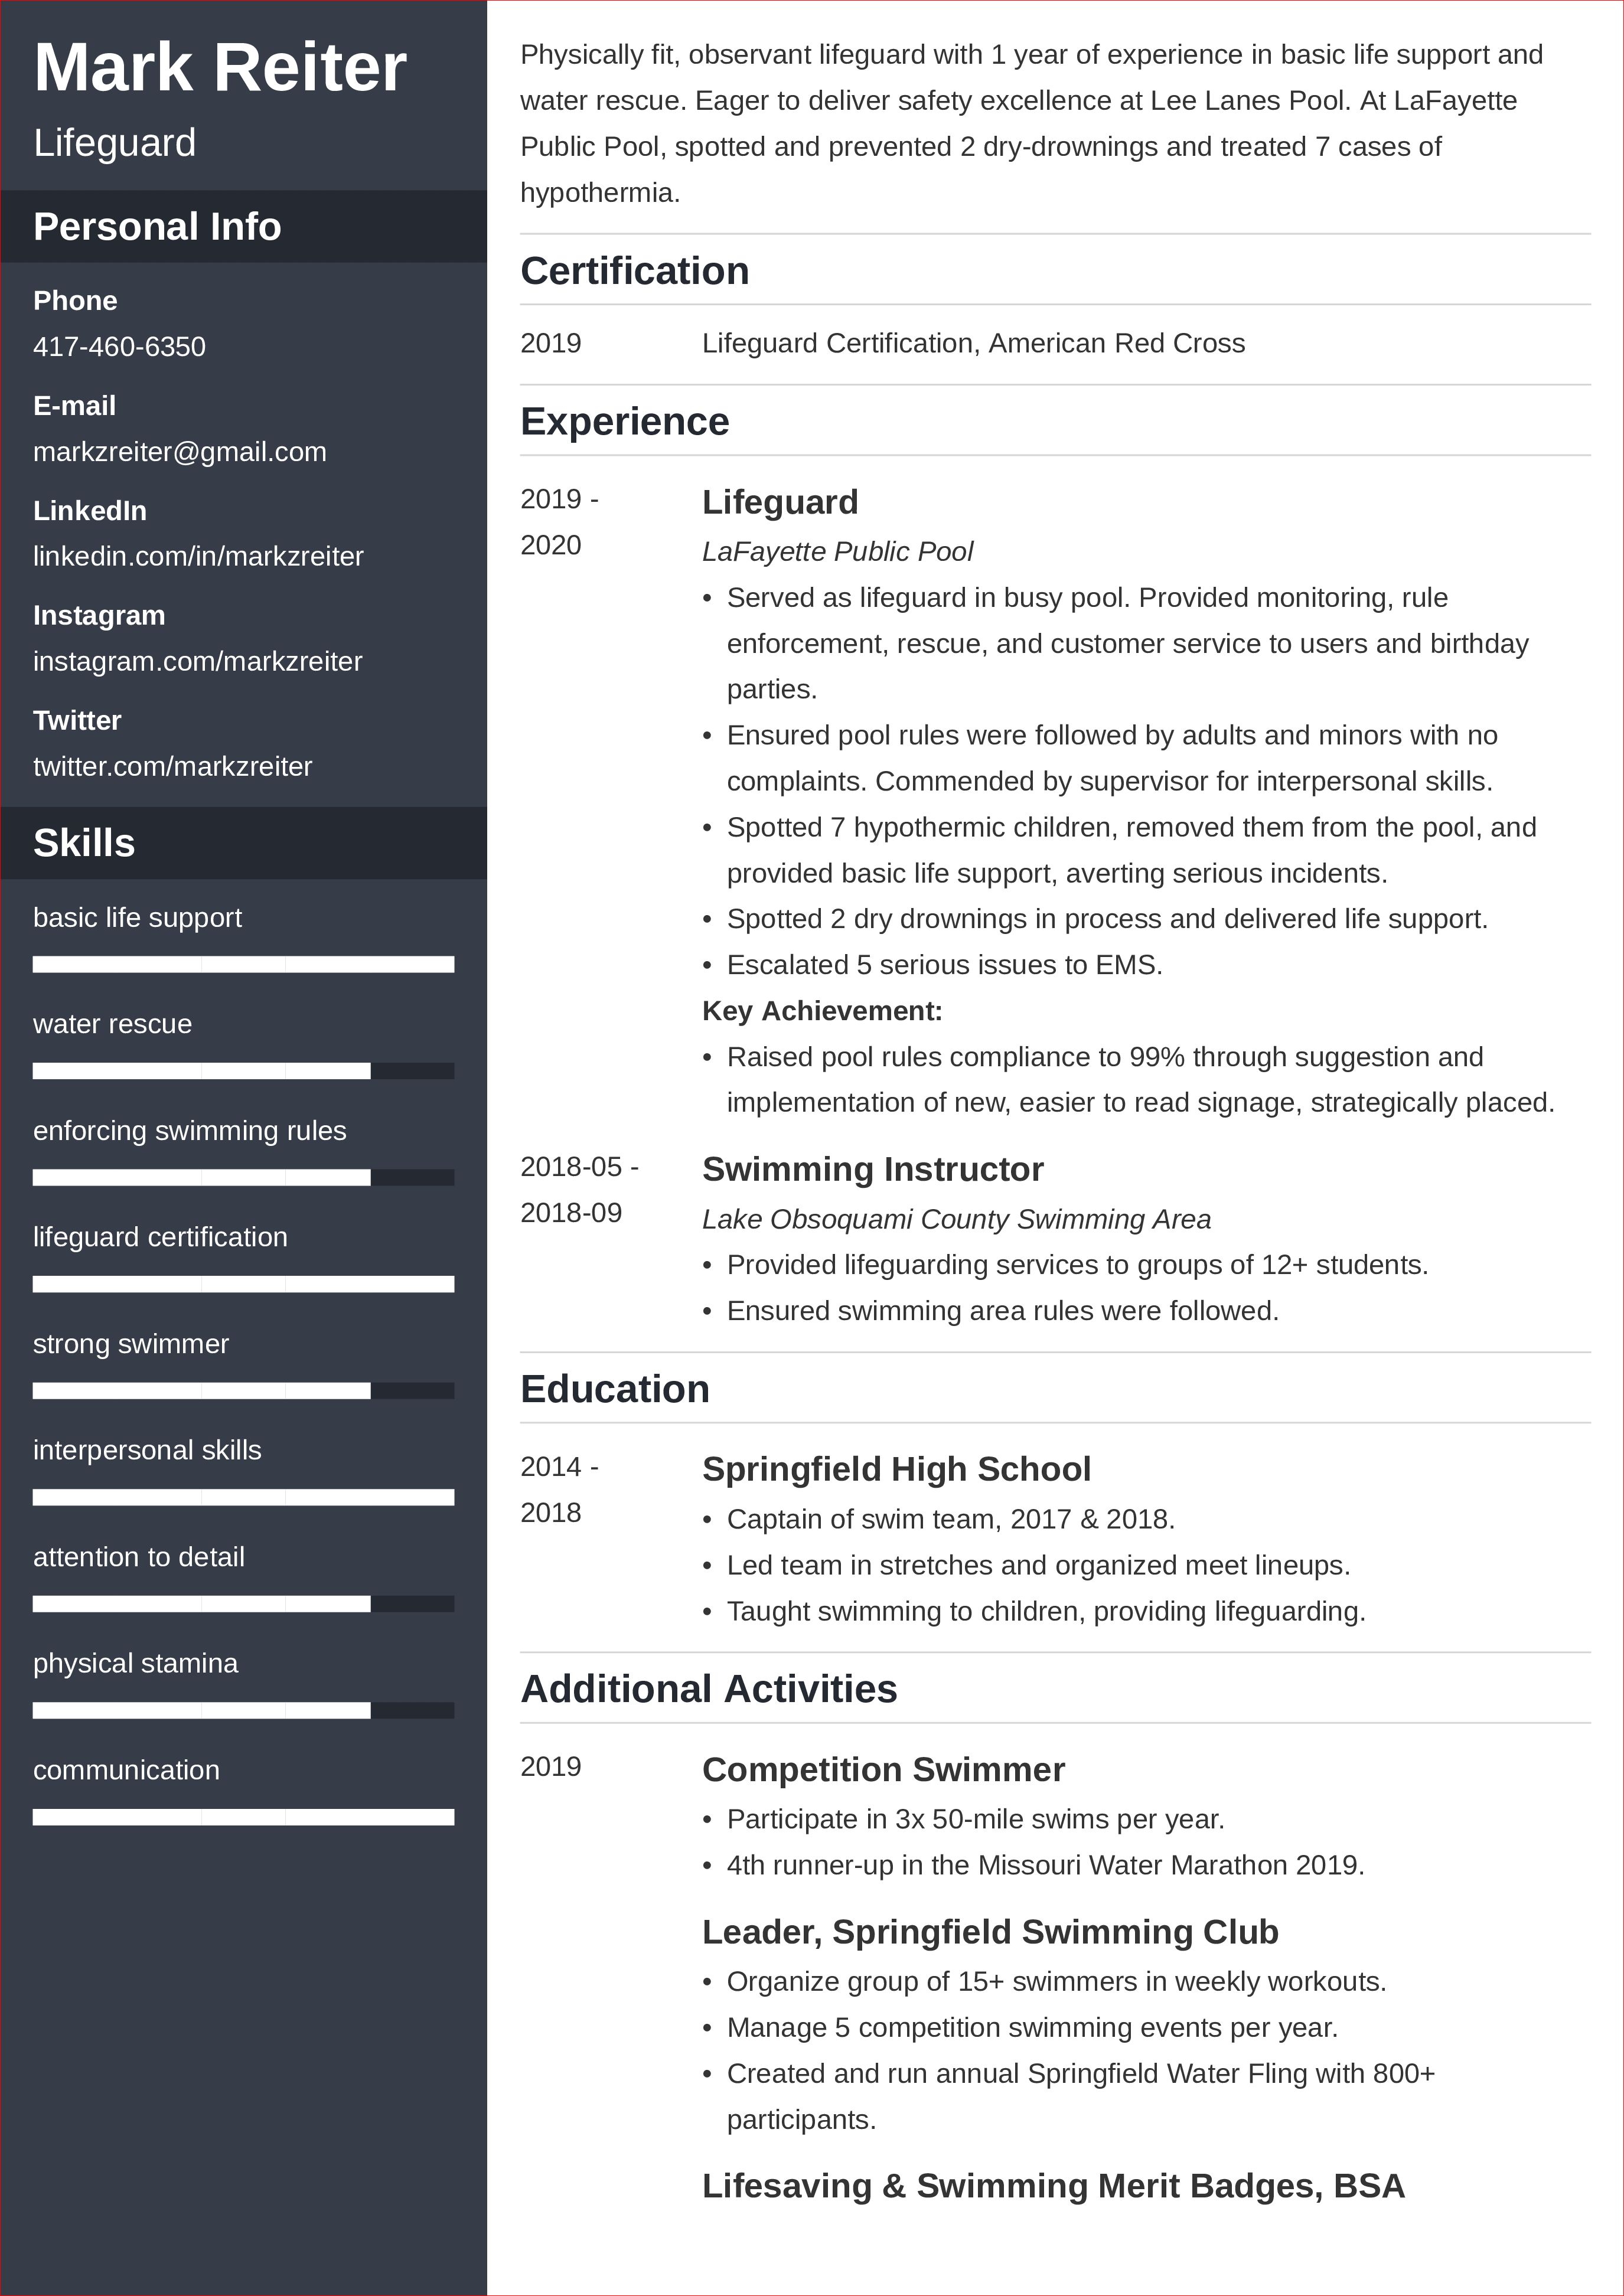 Sample resume for a lifeguard cover letter advertising internship